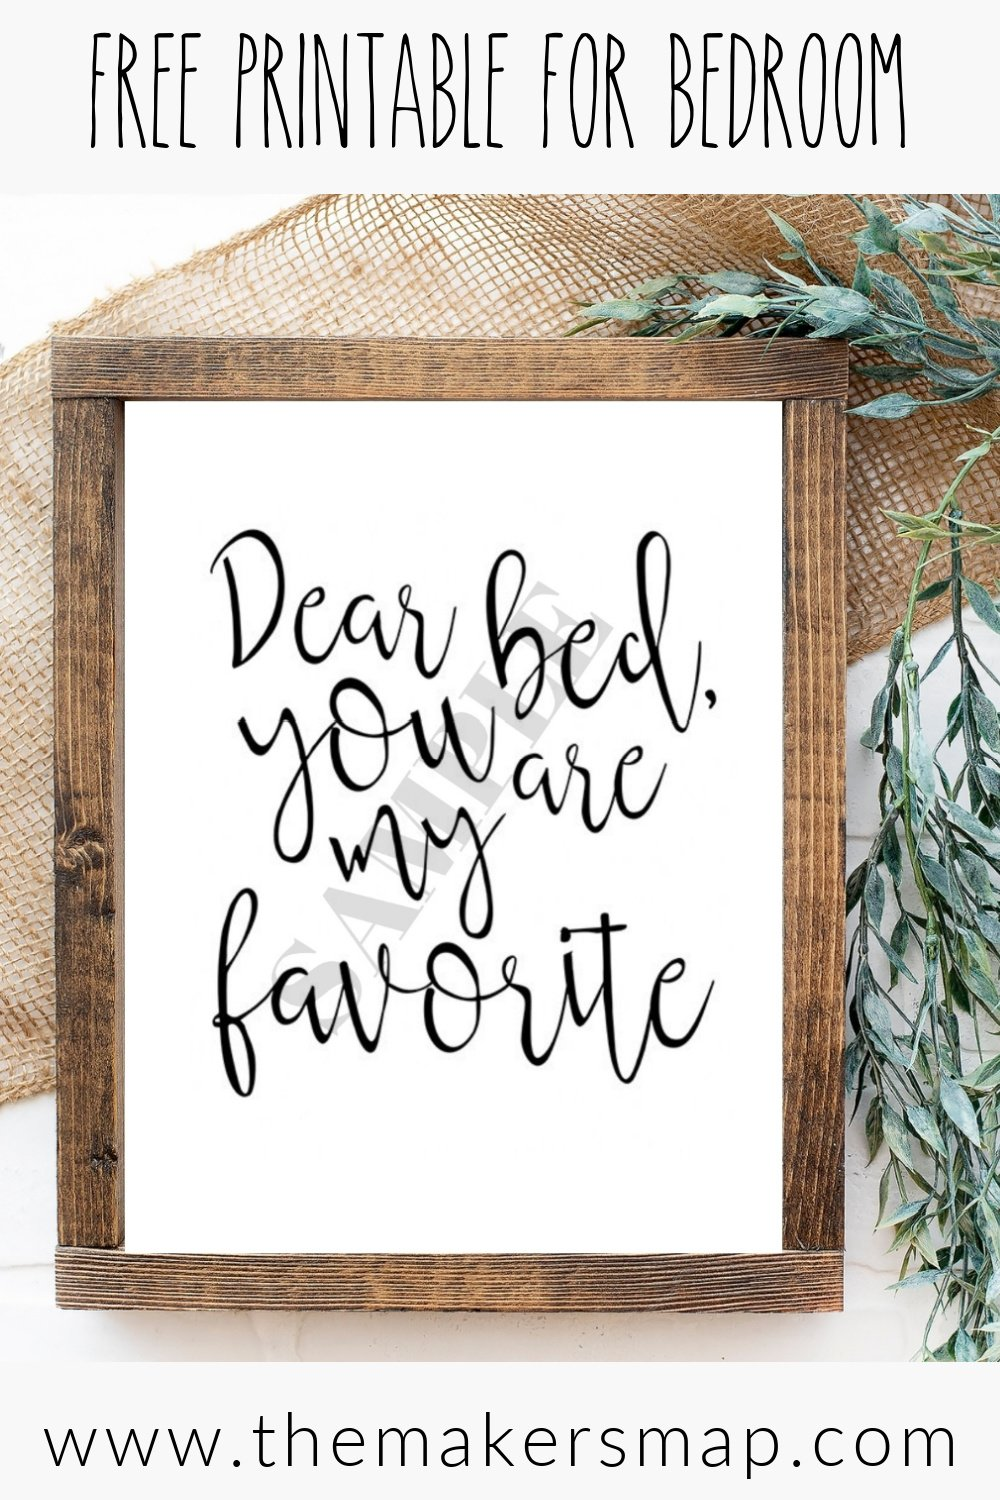 Dear Bed you are my favorite free printable bedroom decor ideas